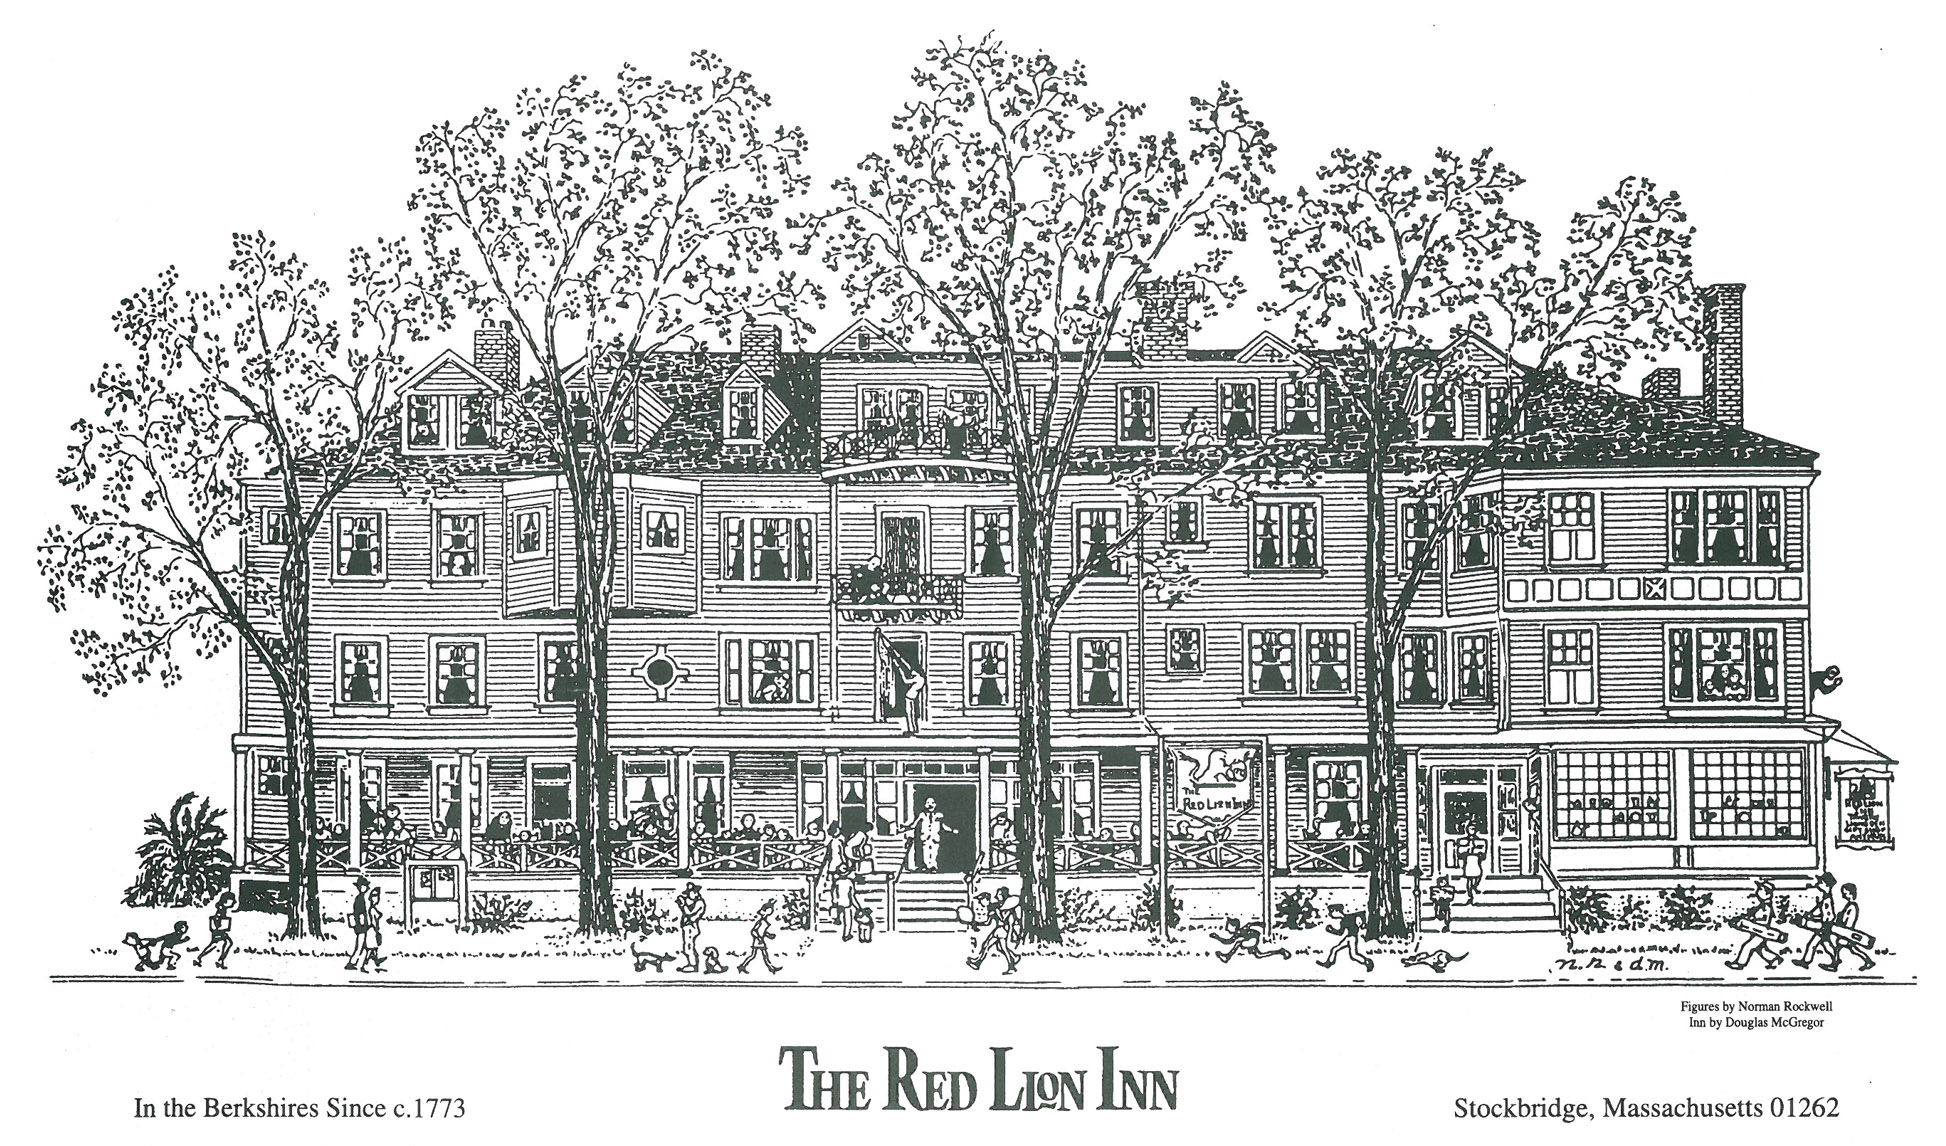 My rooms at the Red Lion were under the two dormers, farthest to the left in this illustration.